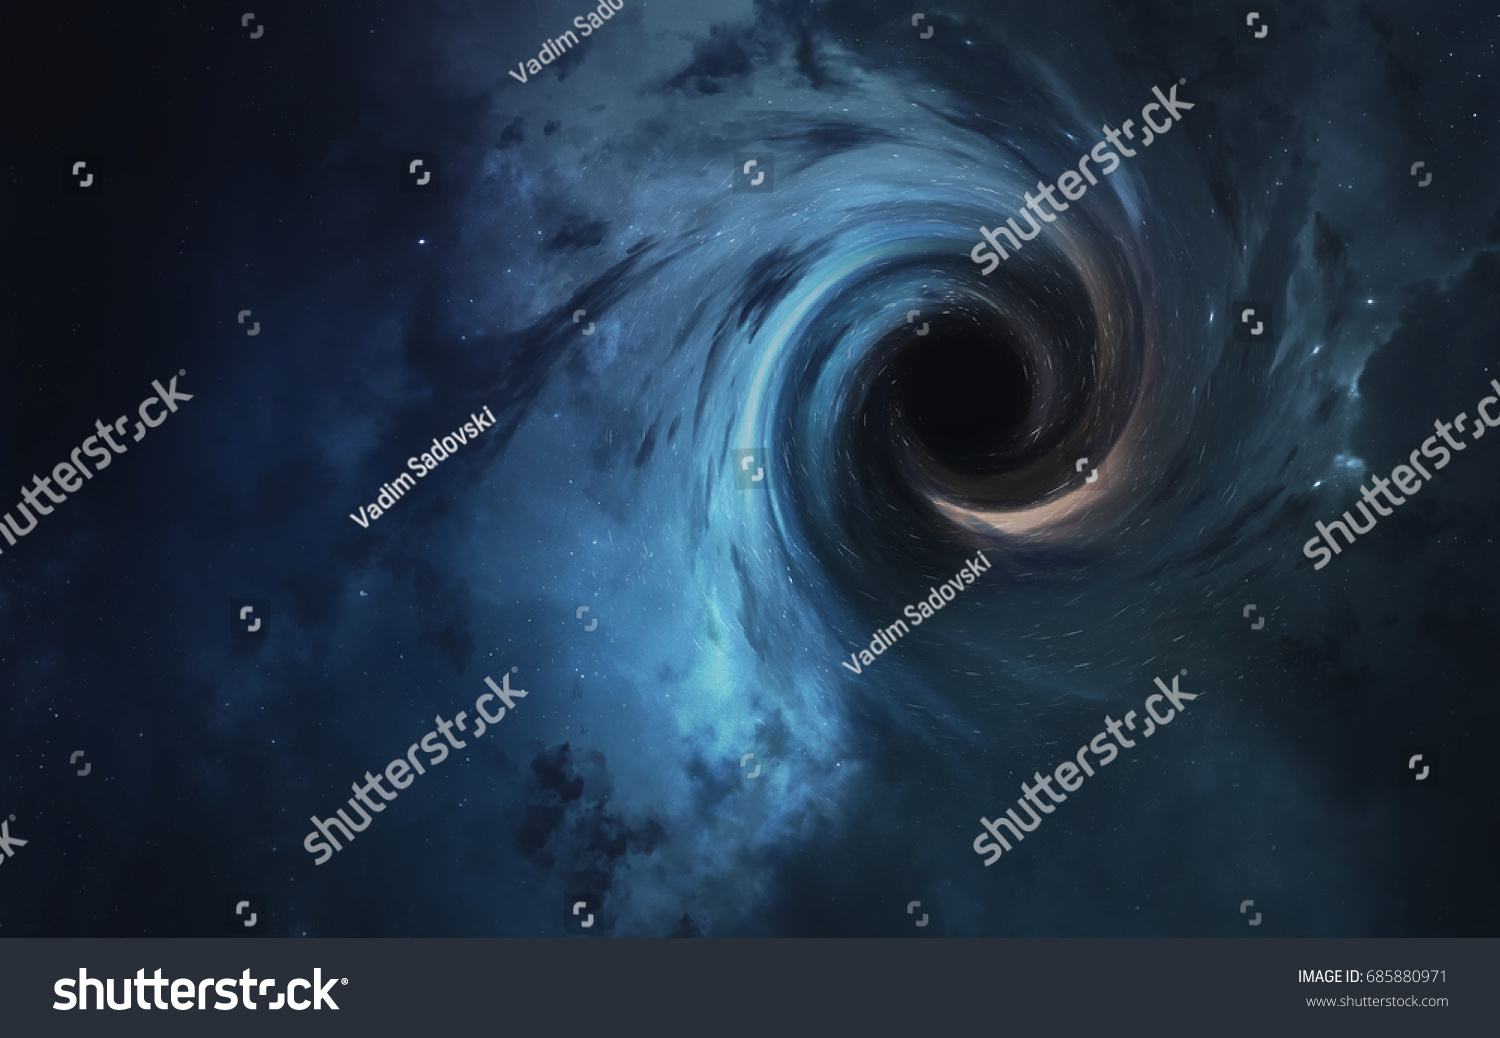 Black Hole Abstract Space Wallpaper Universe Science Stock Image 685880971